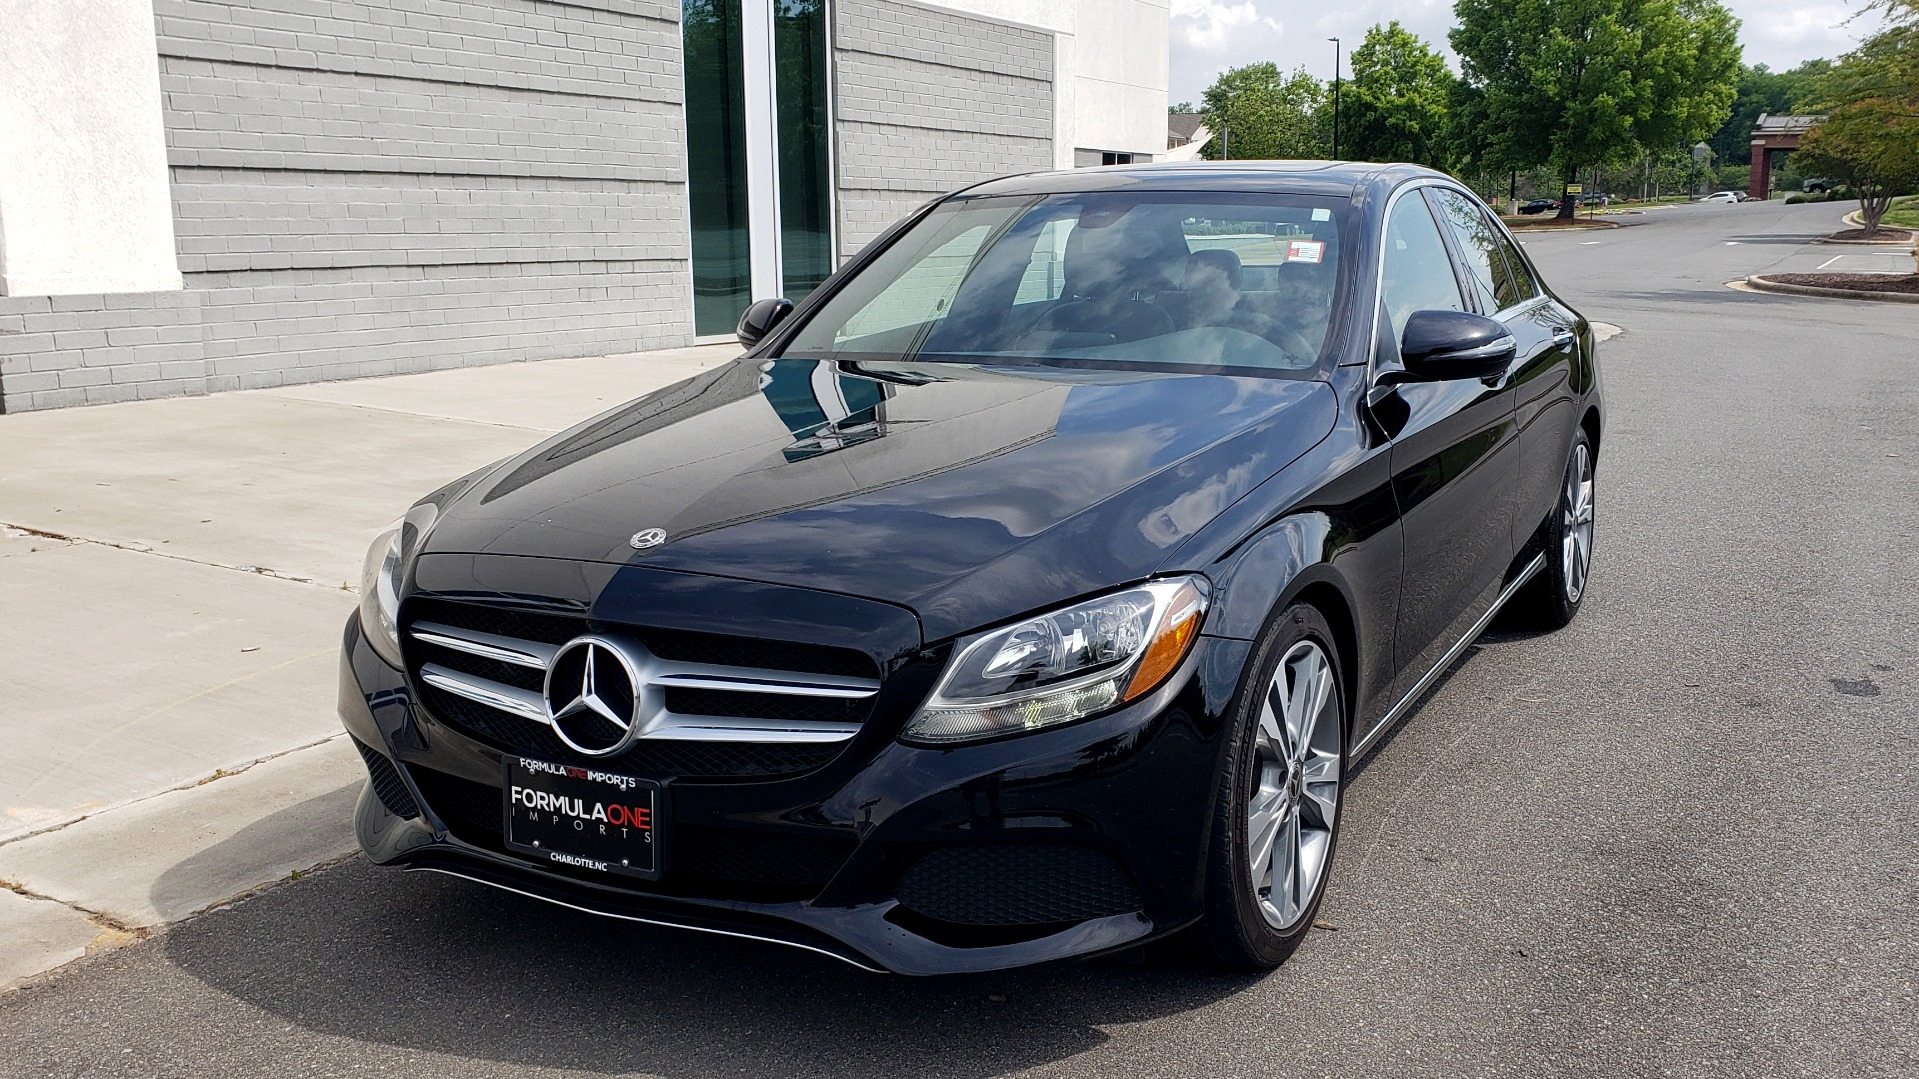 Used 2018 Mercedes-Benz C-CLASS C 300 PREMIUM / HTD STS / APPLE CARPLAY / 18IN WHEELS / REARVIEW for sale $24,795 at Formula Imports in Charlotte NC 28227 2